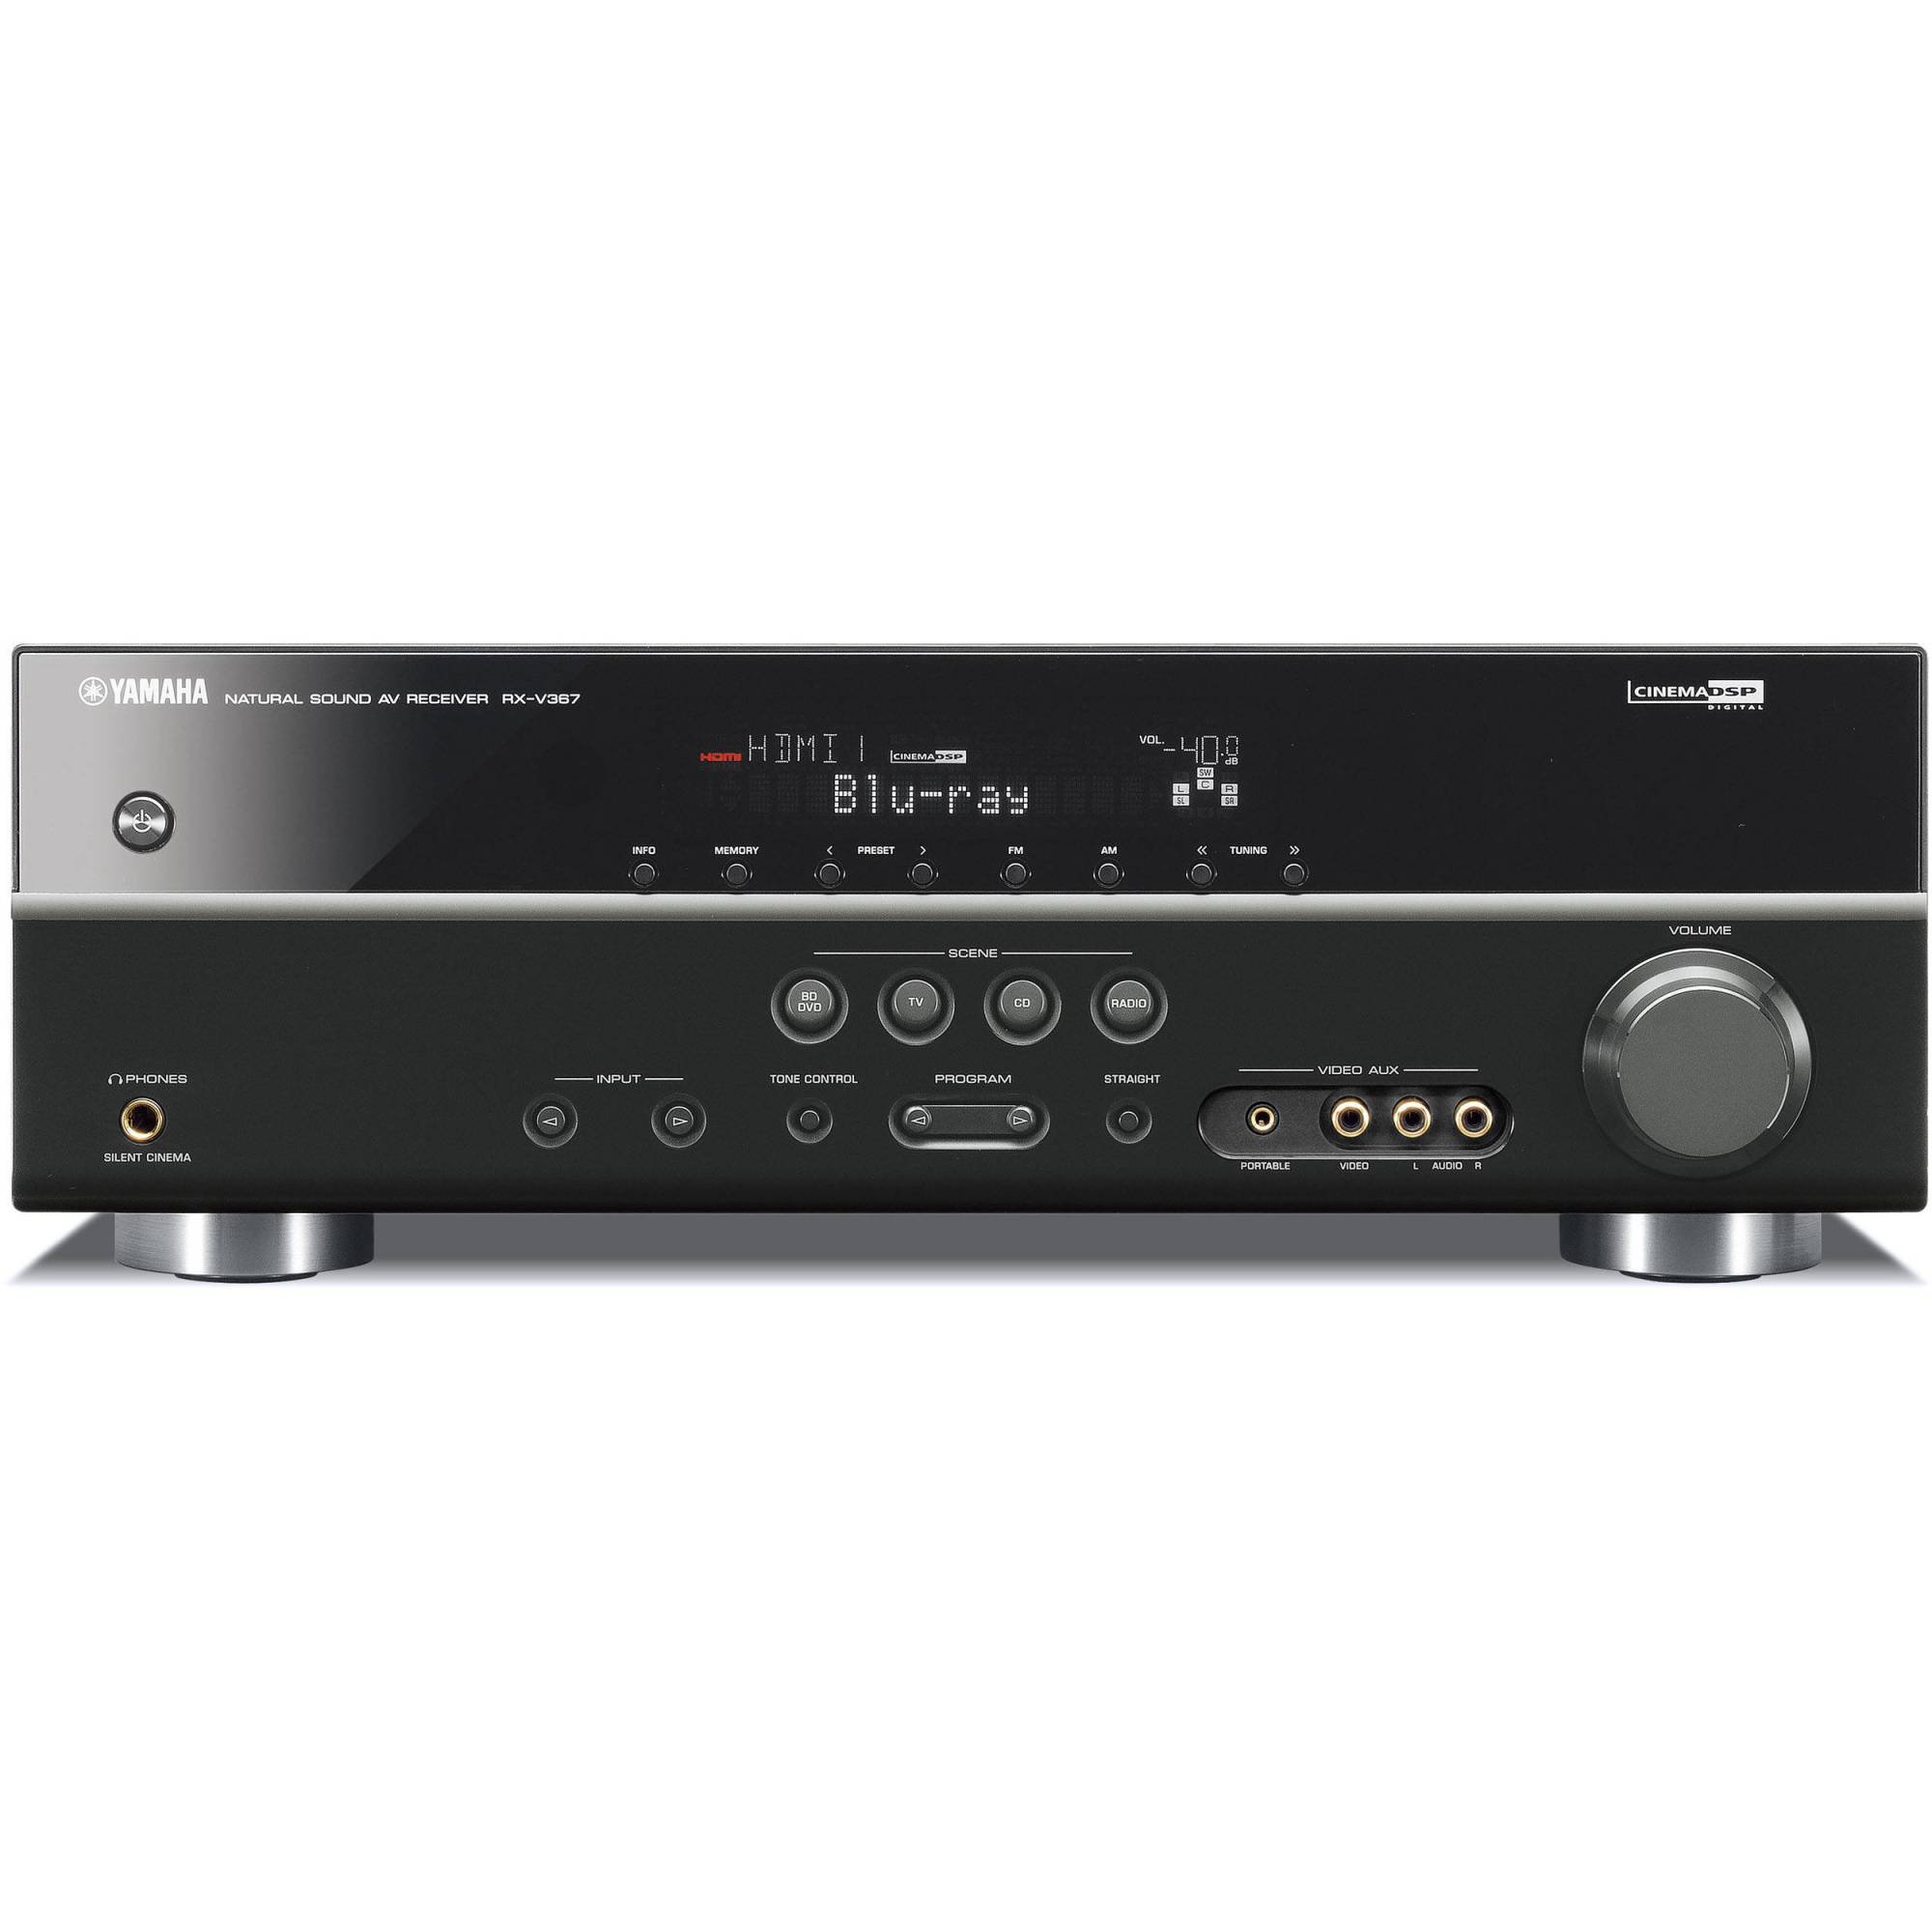 hight resolution of yamaha rx v367 5 1 channel home theater receiver